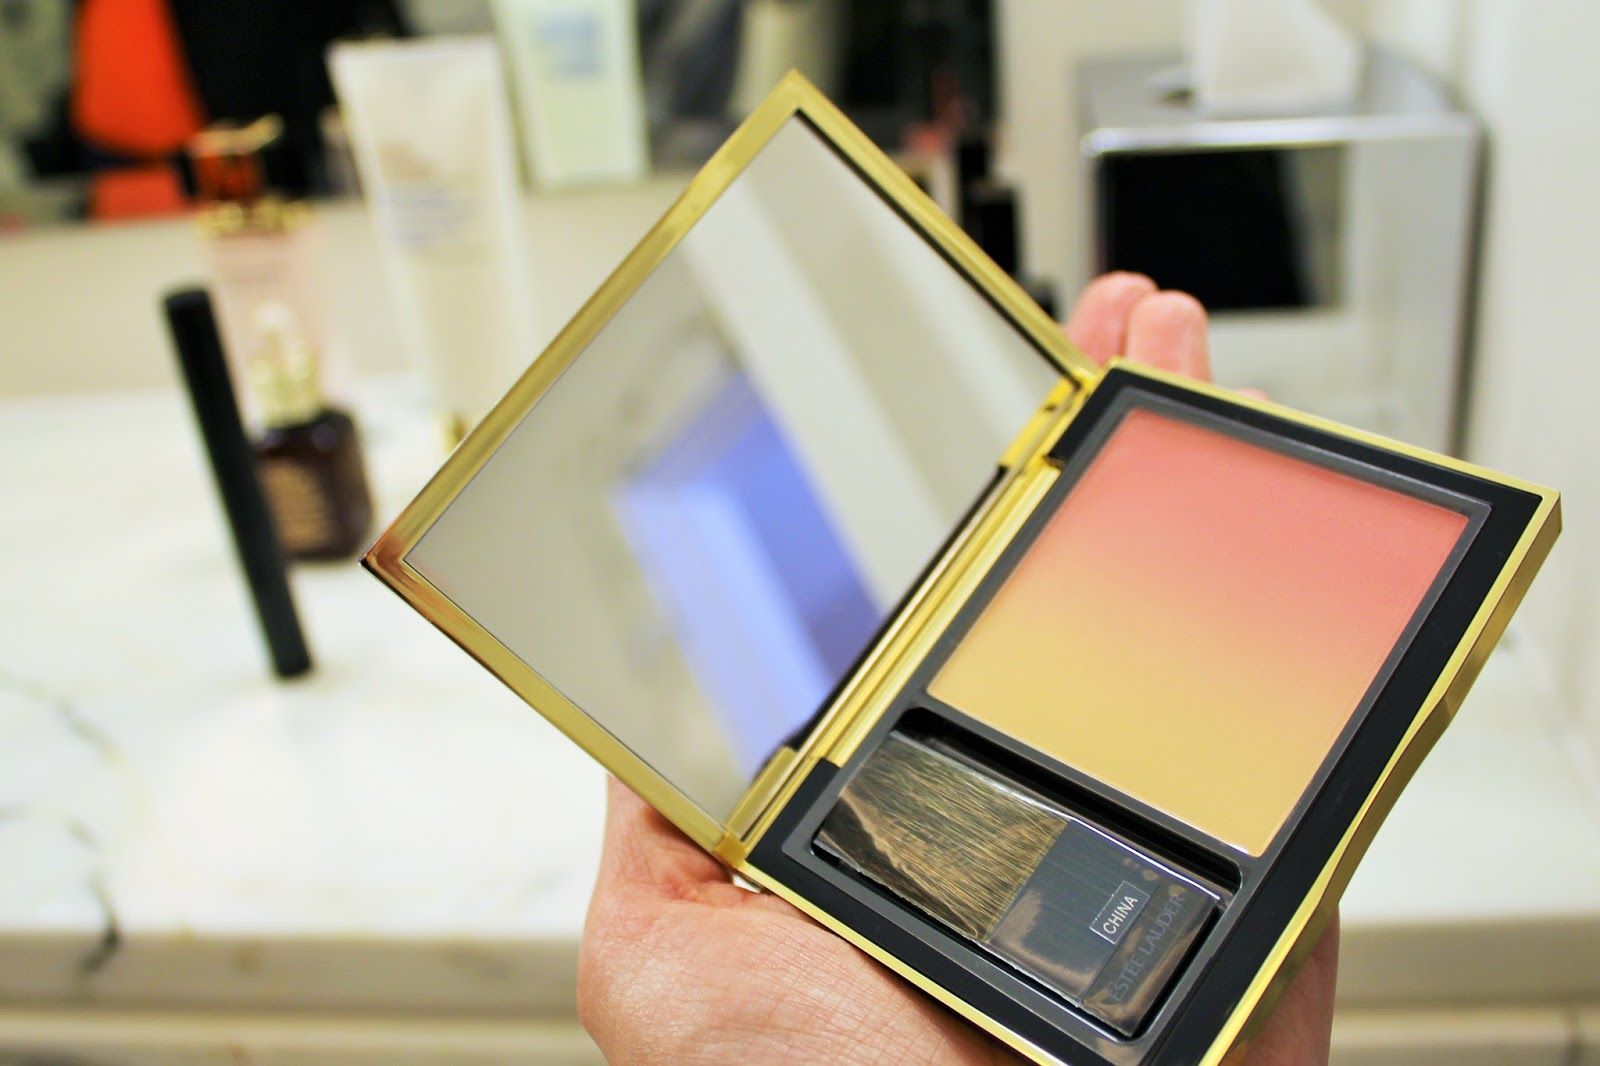 Debenhams Beauty Press Day - SS16 21 - Estee Lauder Pure Color Envy Sculpting Blush in Witty Peach